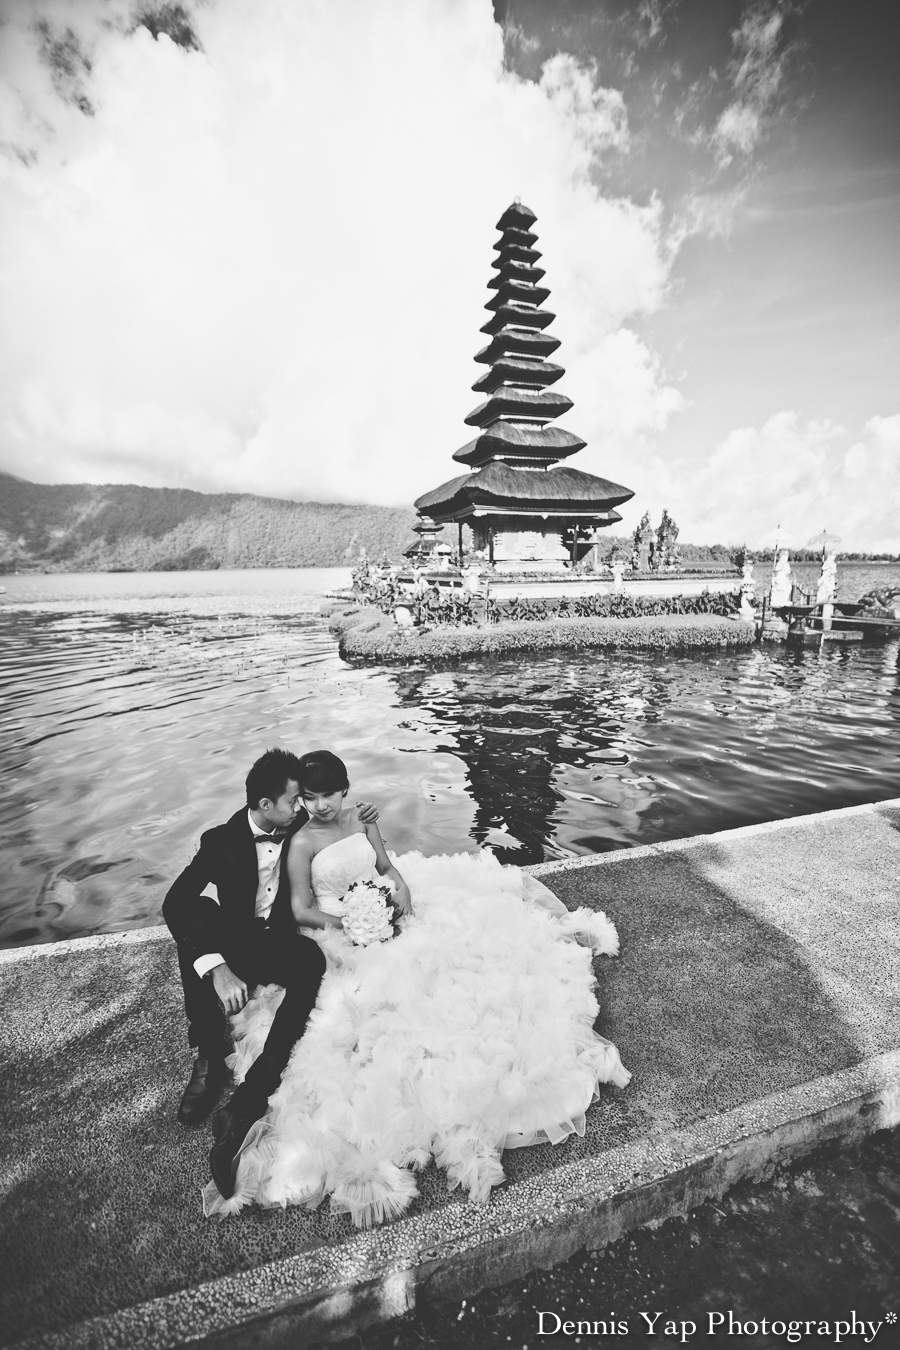 weng wai lisa pre wedding bali indonesia dennis yap photography malaysia wedding photographer asia top 30 beloved-14.jpg